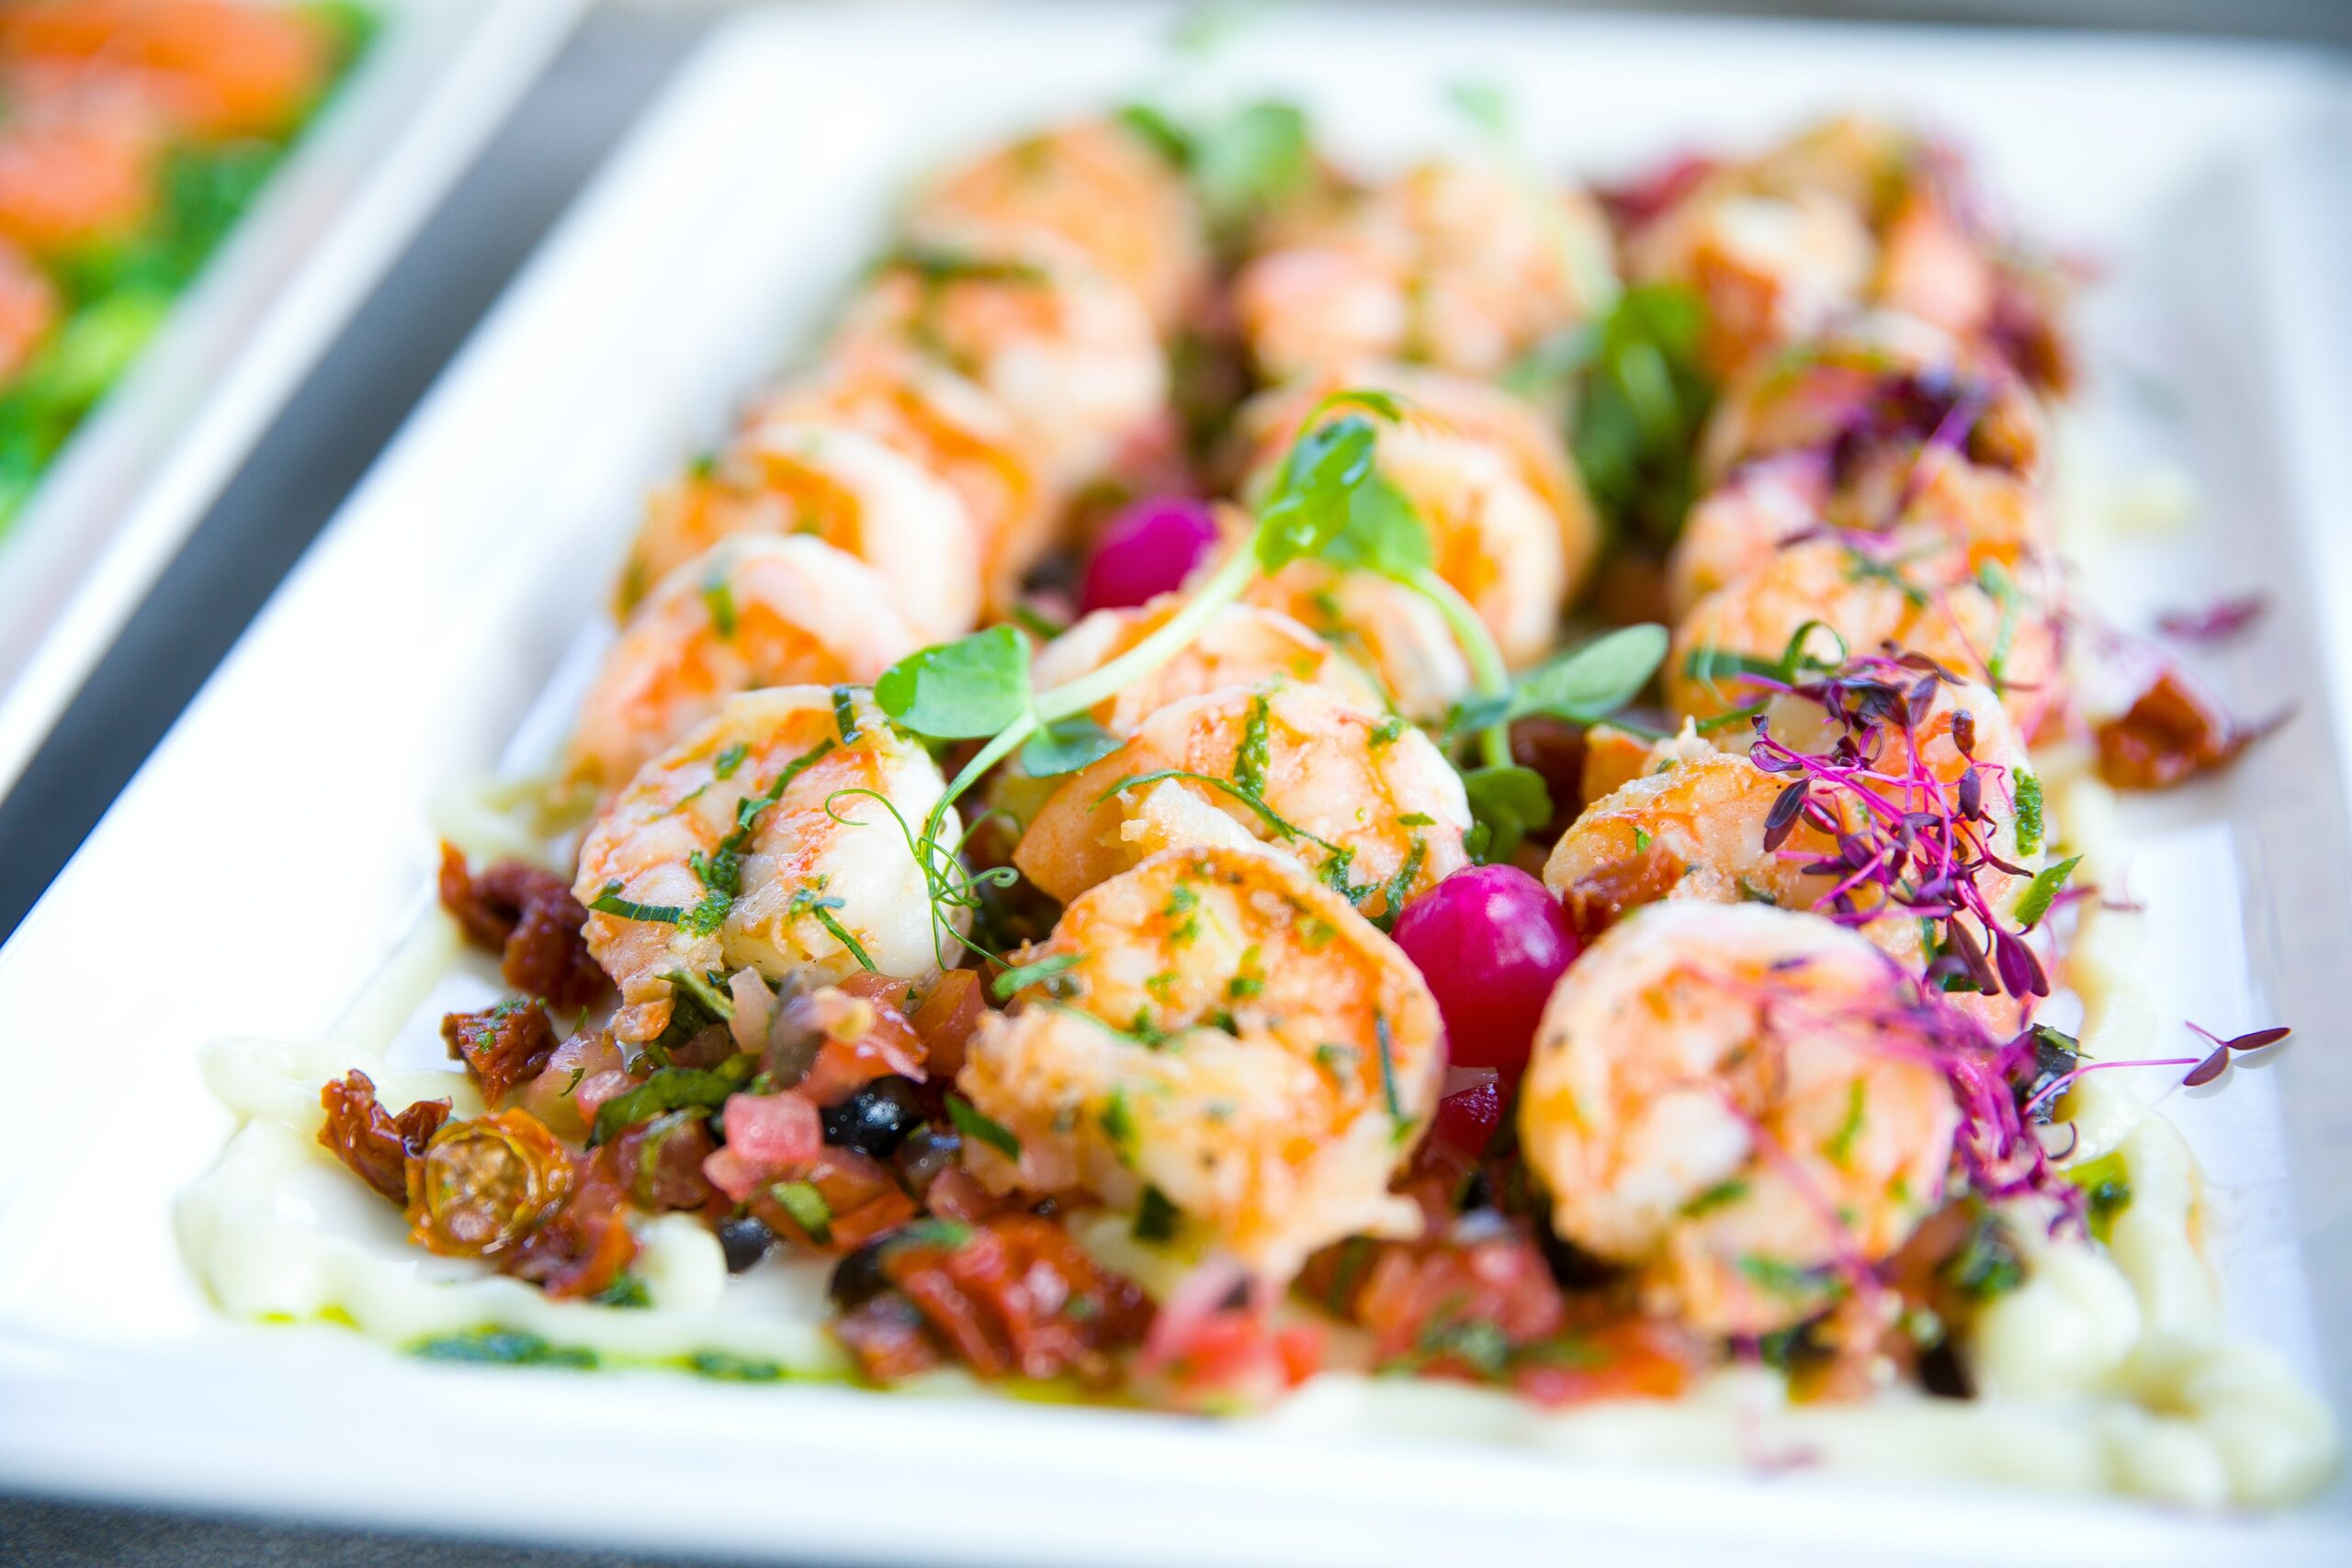 pharmaceutical catering in lake county, vernon hills pharmaceutical catering, catering company